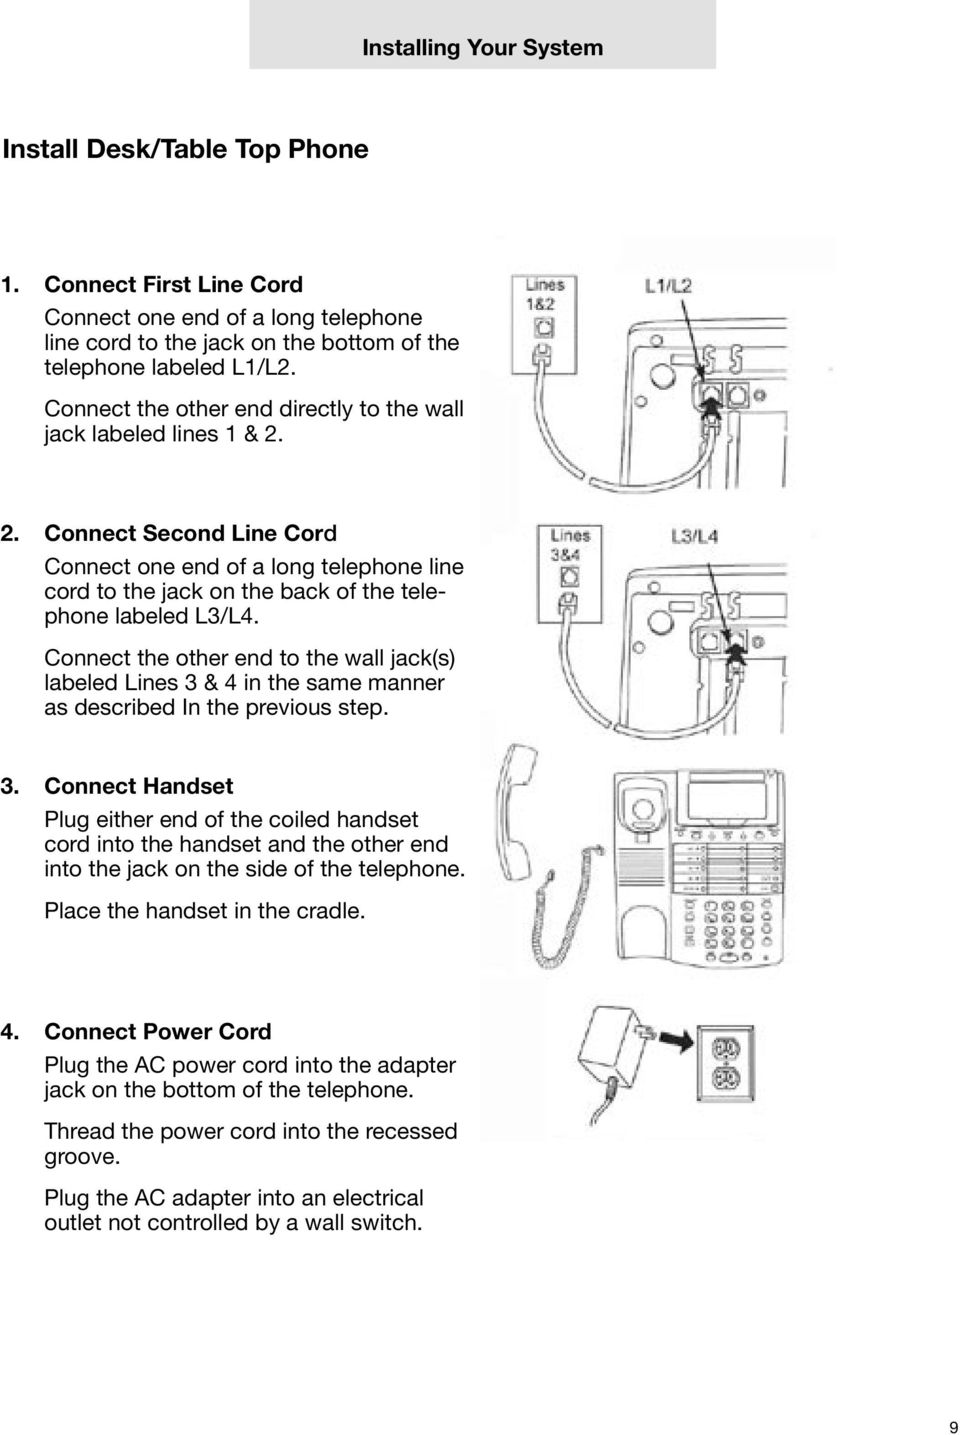 Technical Guide For Installation And Maintenance Pdf Ac Power Cord Wiring Connect The Other End To Wall Jacks Labeled Lines 3 4